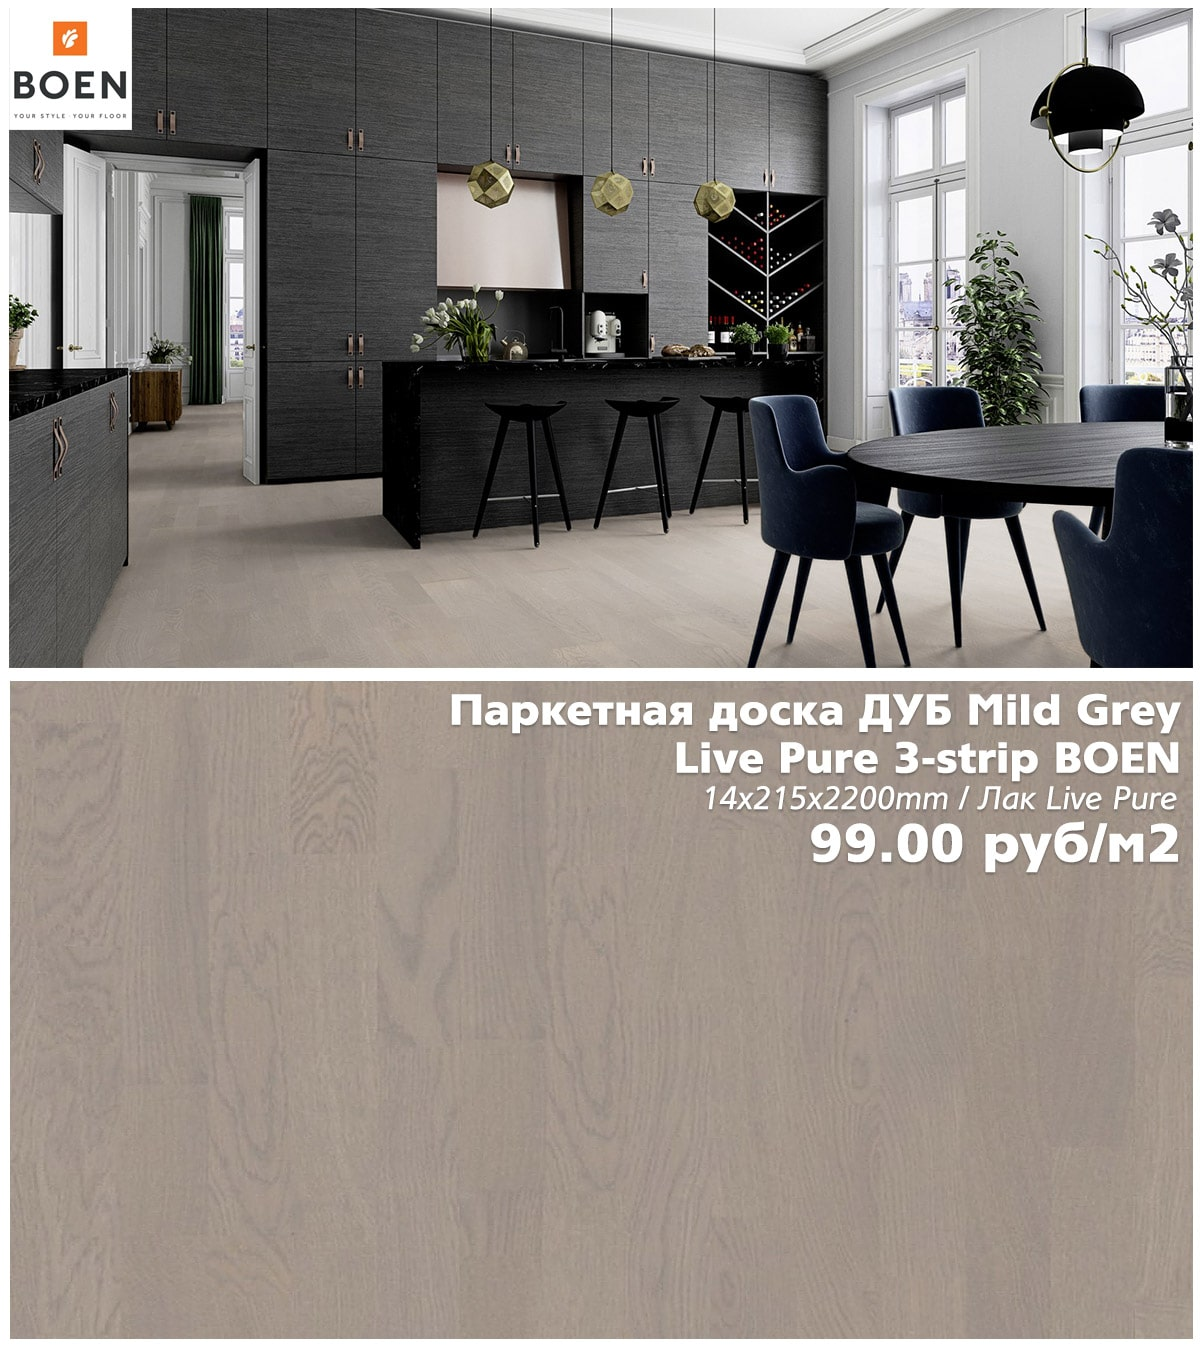 Дуб Mild Grey Live Pure 3-strip